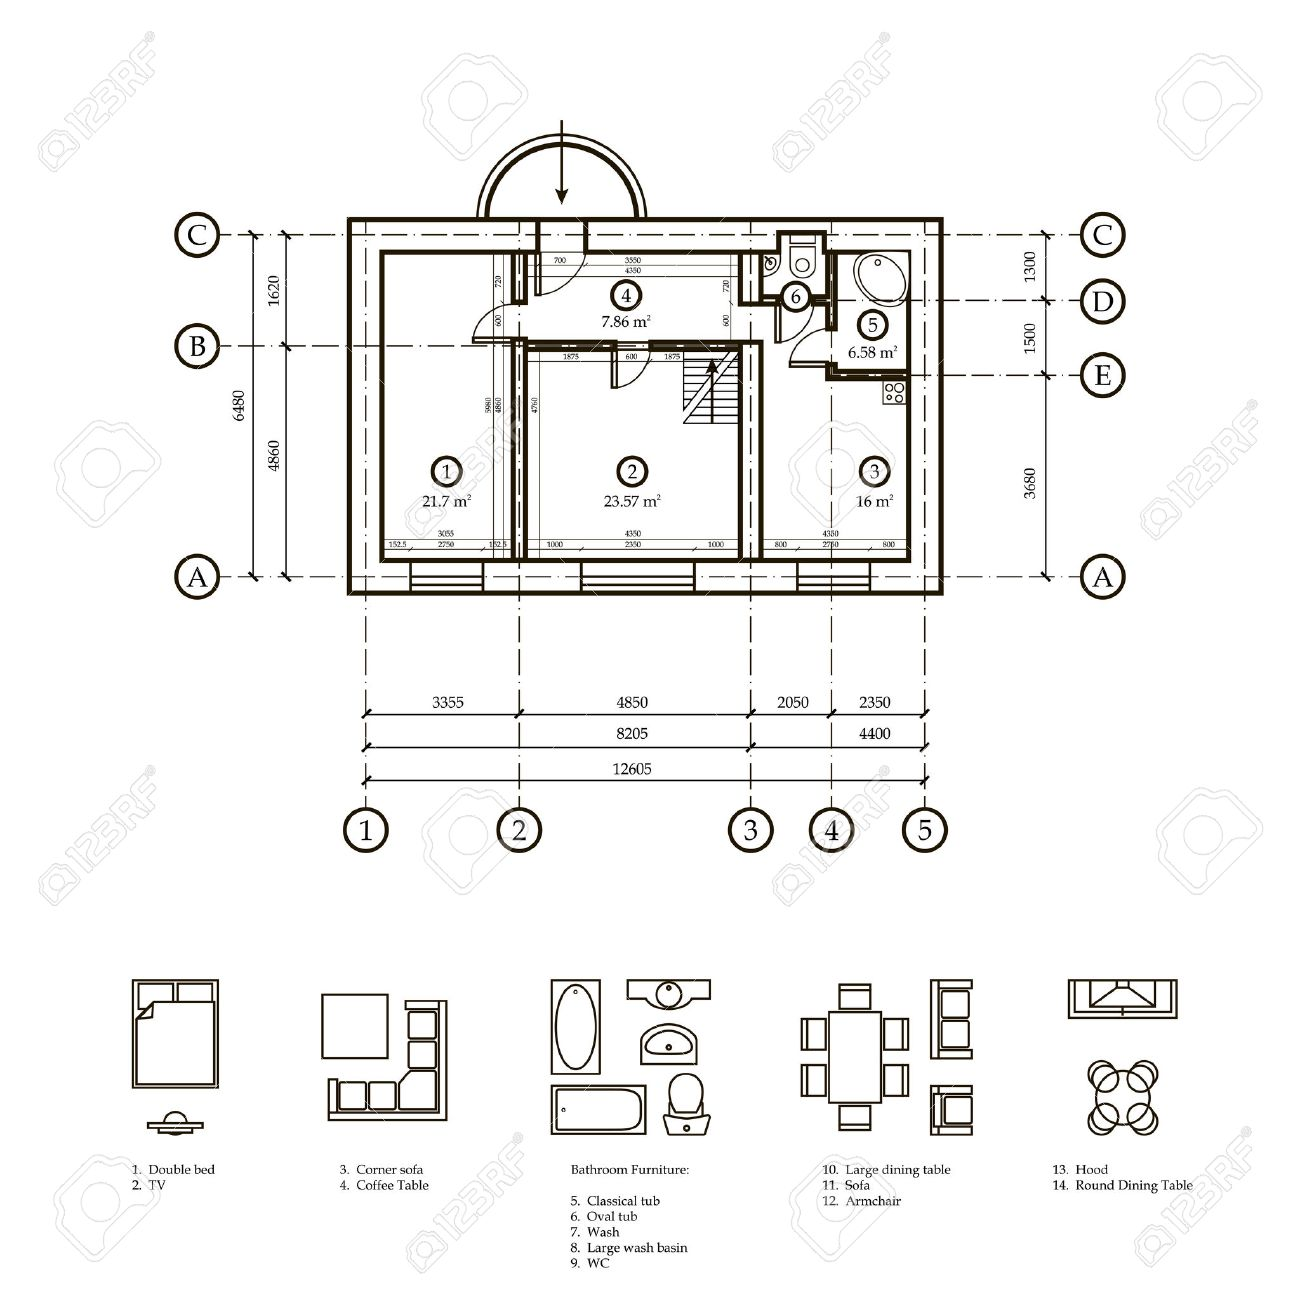 Plan Of The Apartment Drawing Plan Apartments And Drawing  # Muebles Dibujo Arquitectonico